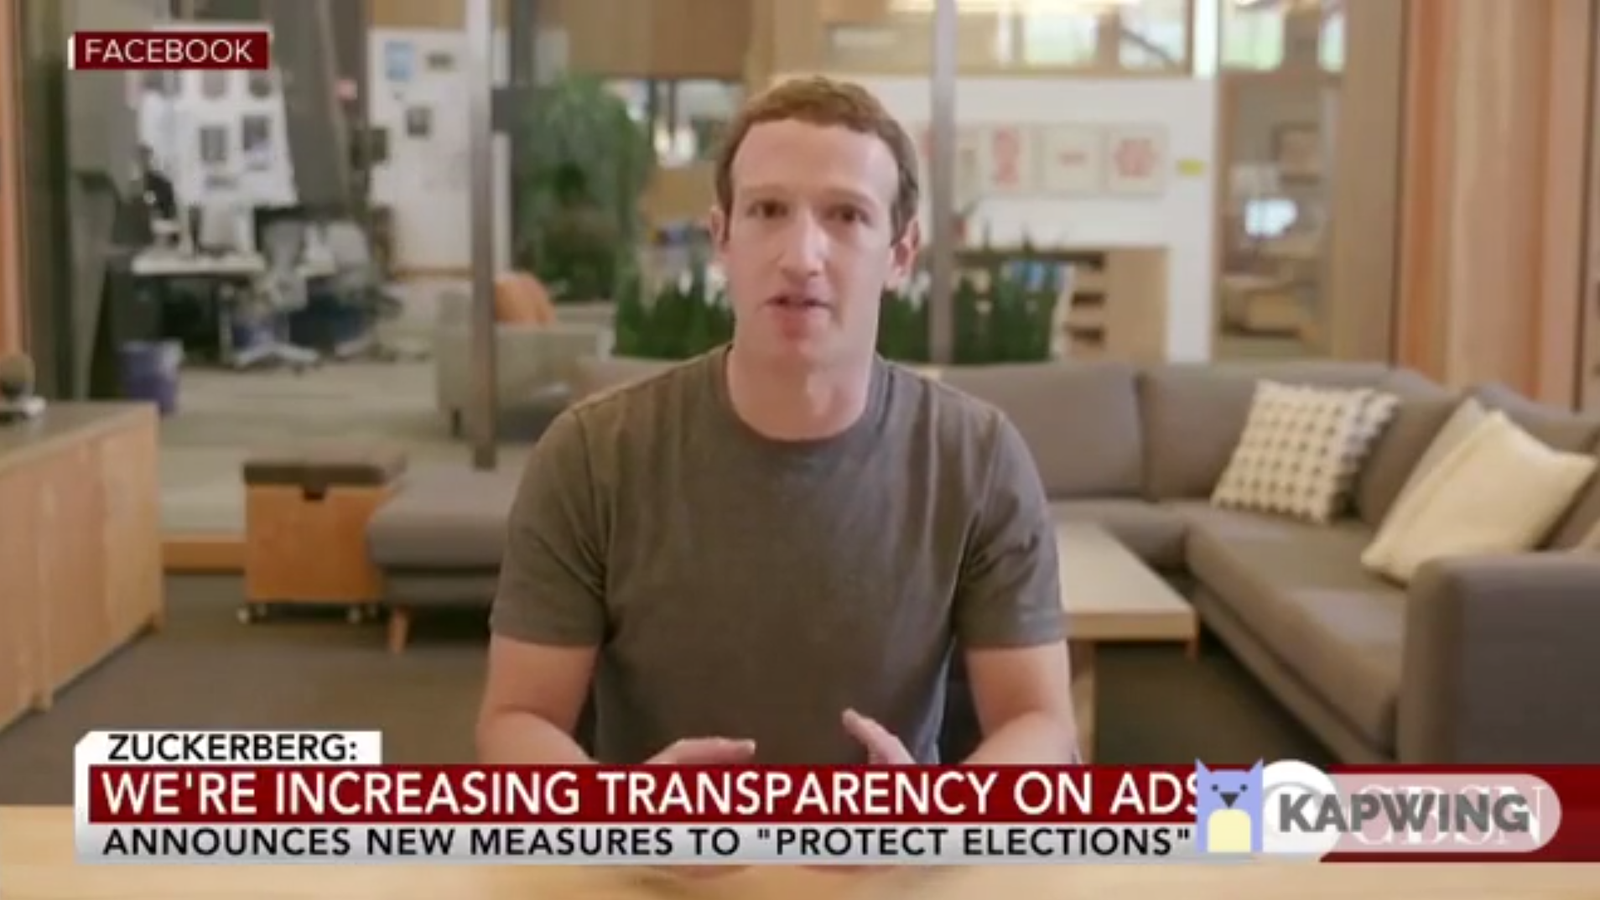 Meet the Deepfake Zuck, Same as the Flesh Zuck